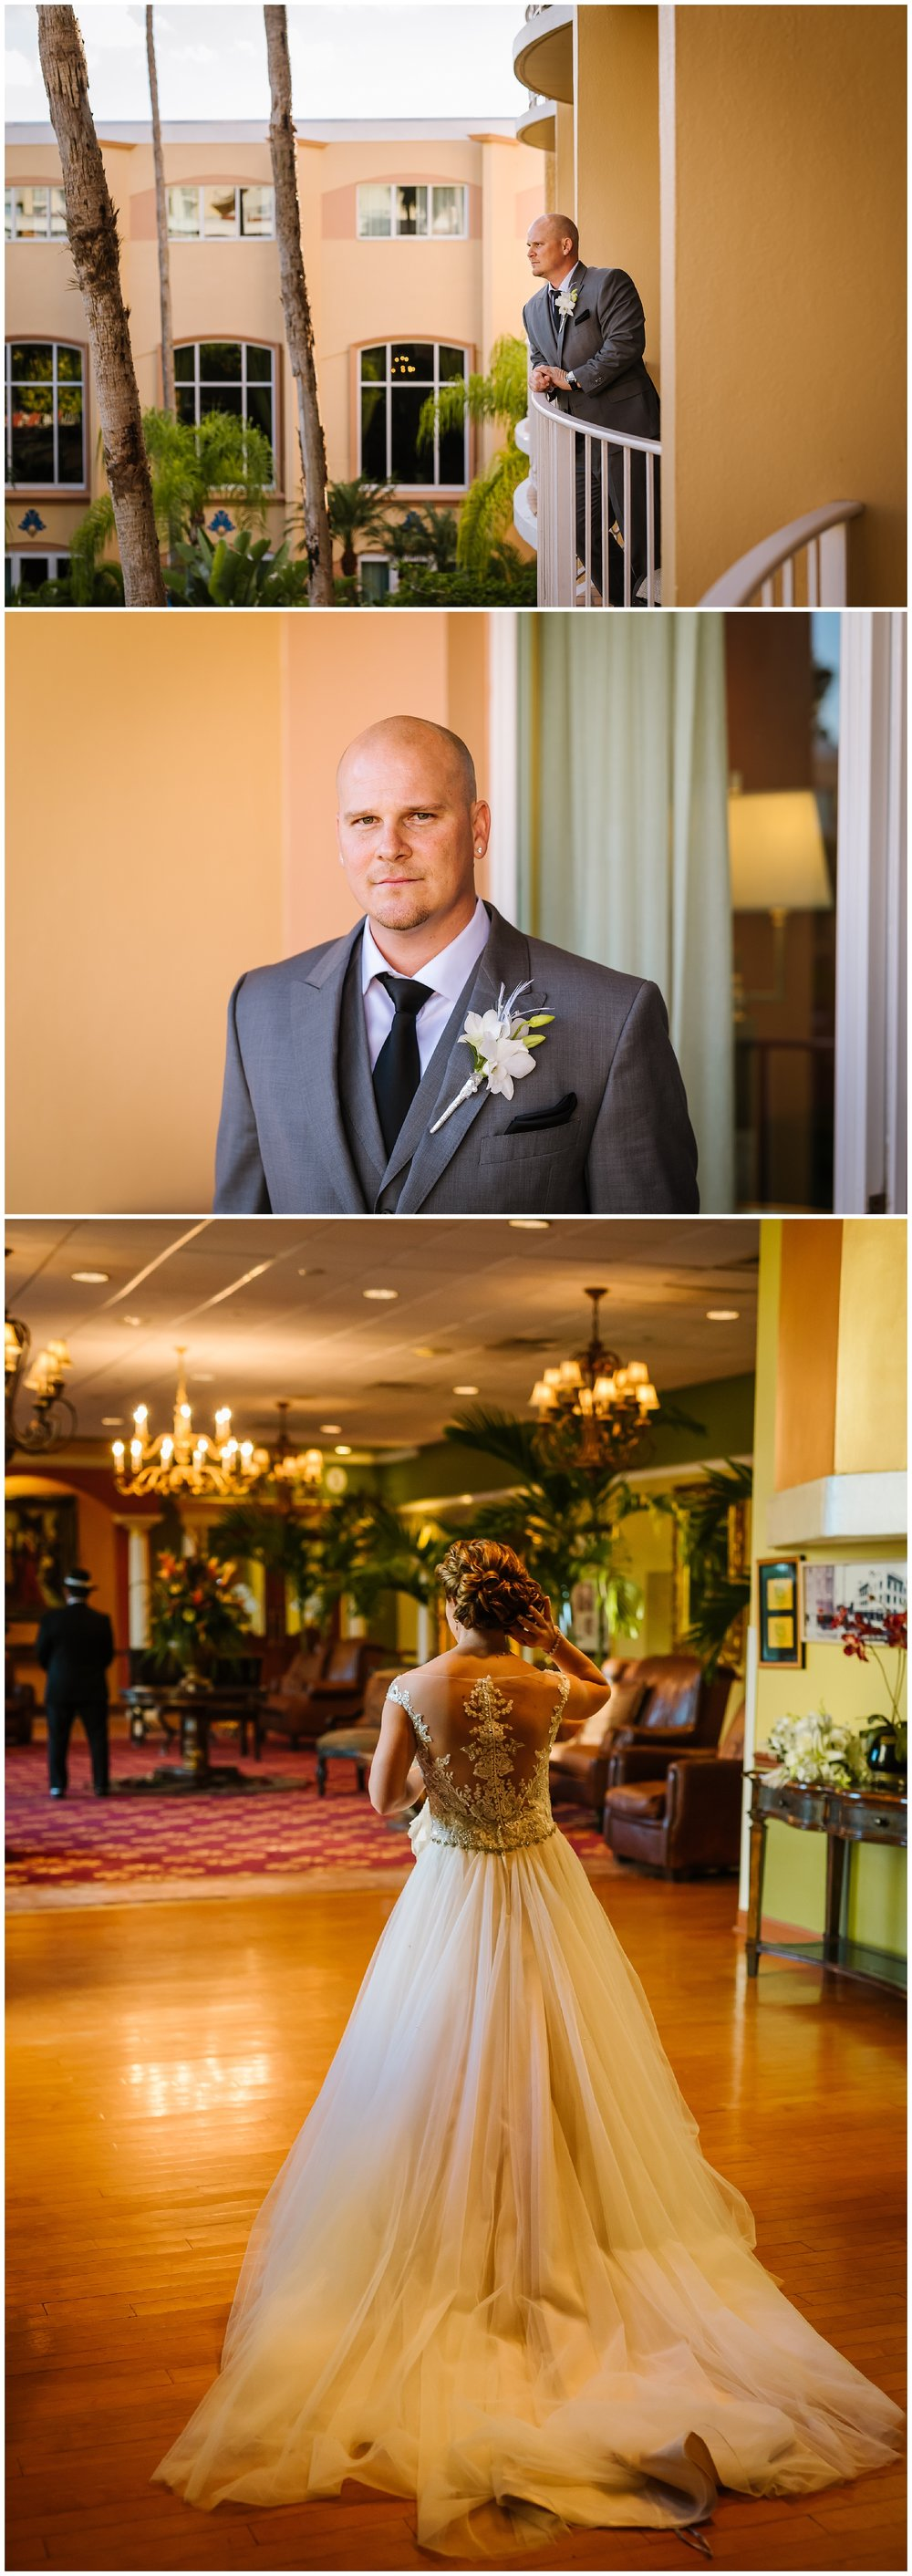 Tampa-wedding-photography-ruth-eckerd-hall-gatsby-unique-dramatic_0015.jpg